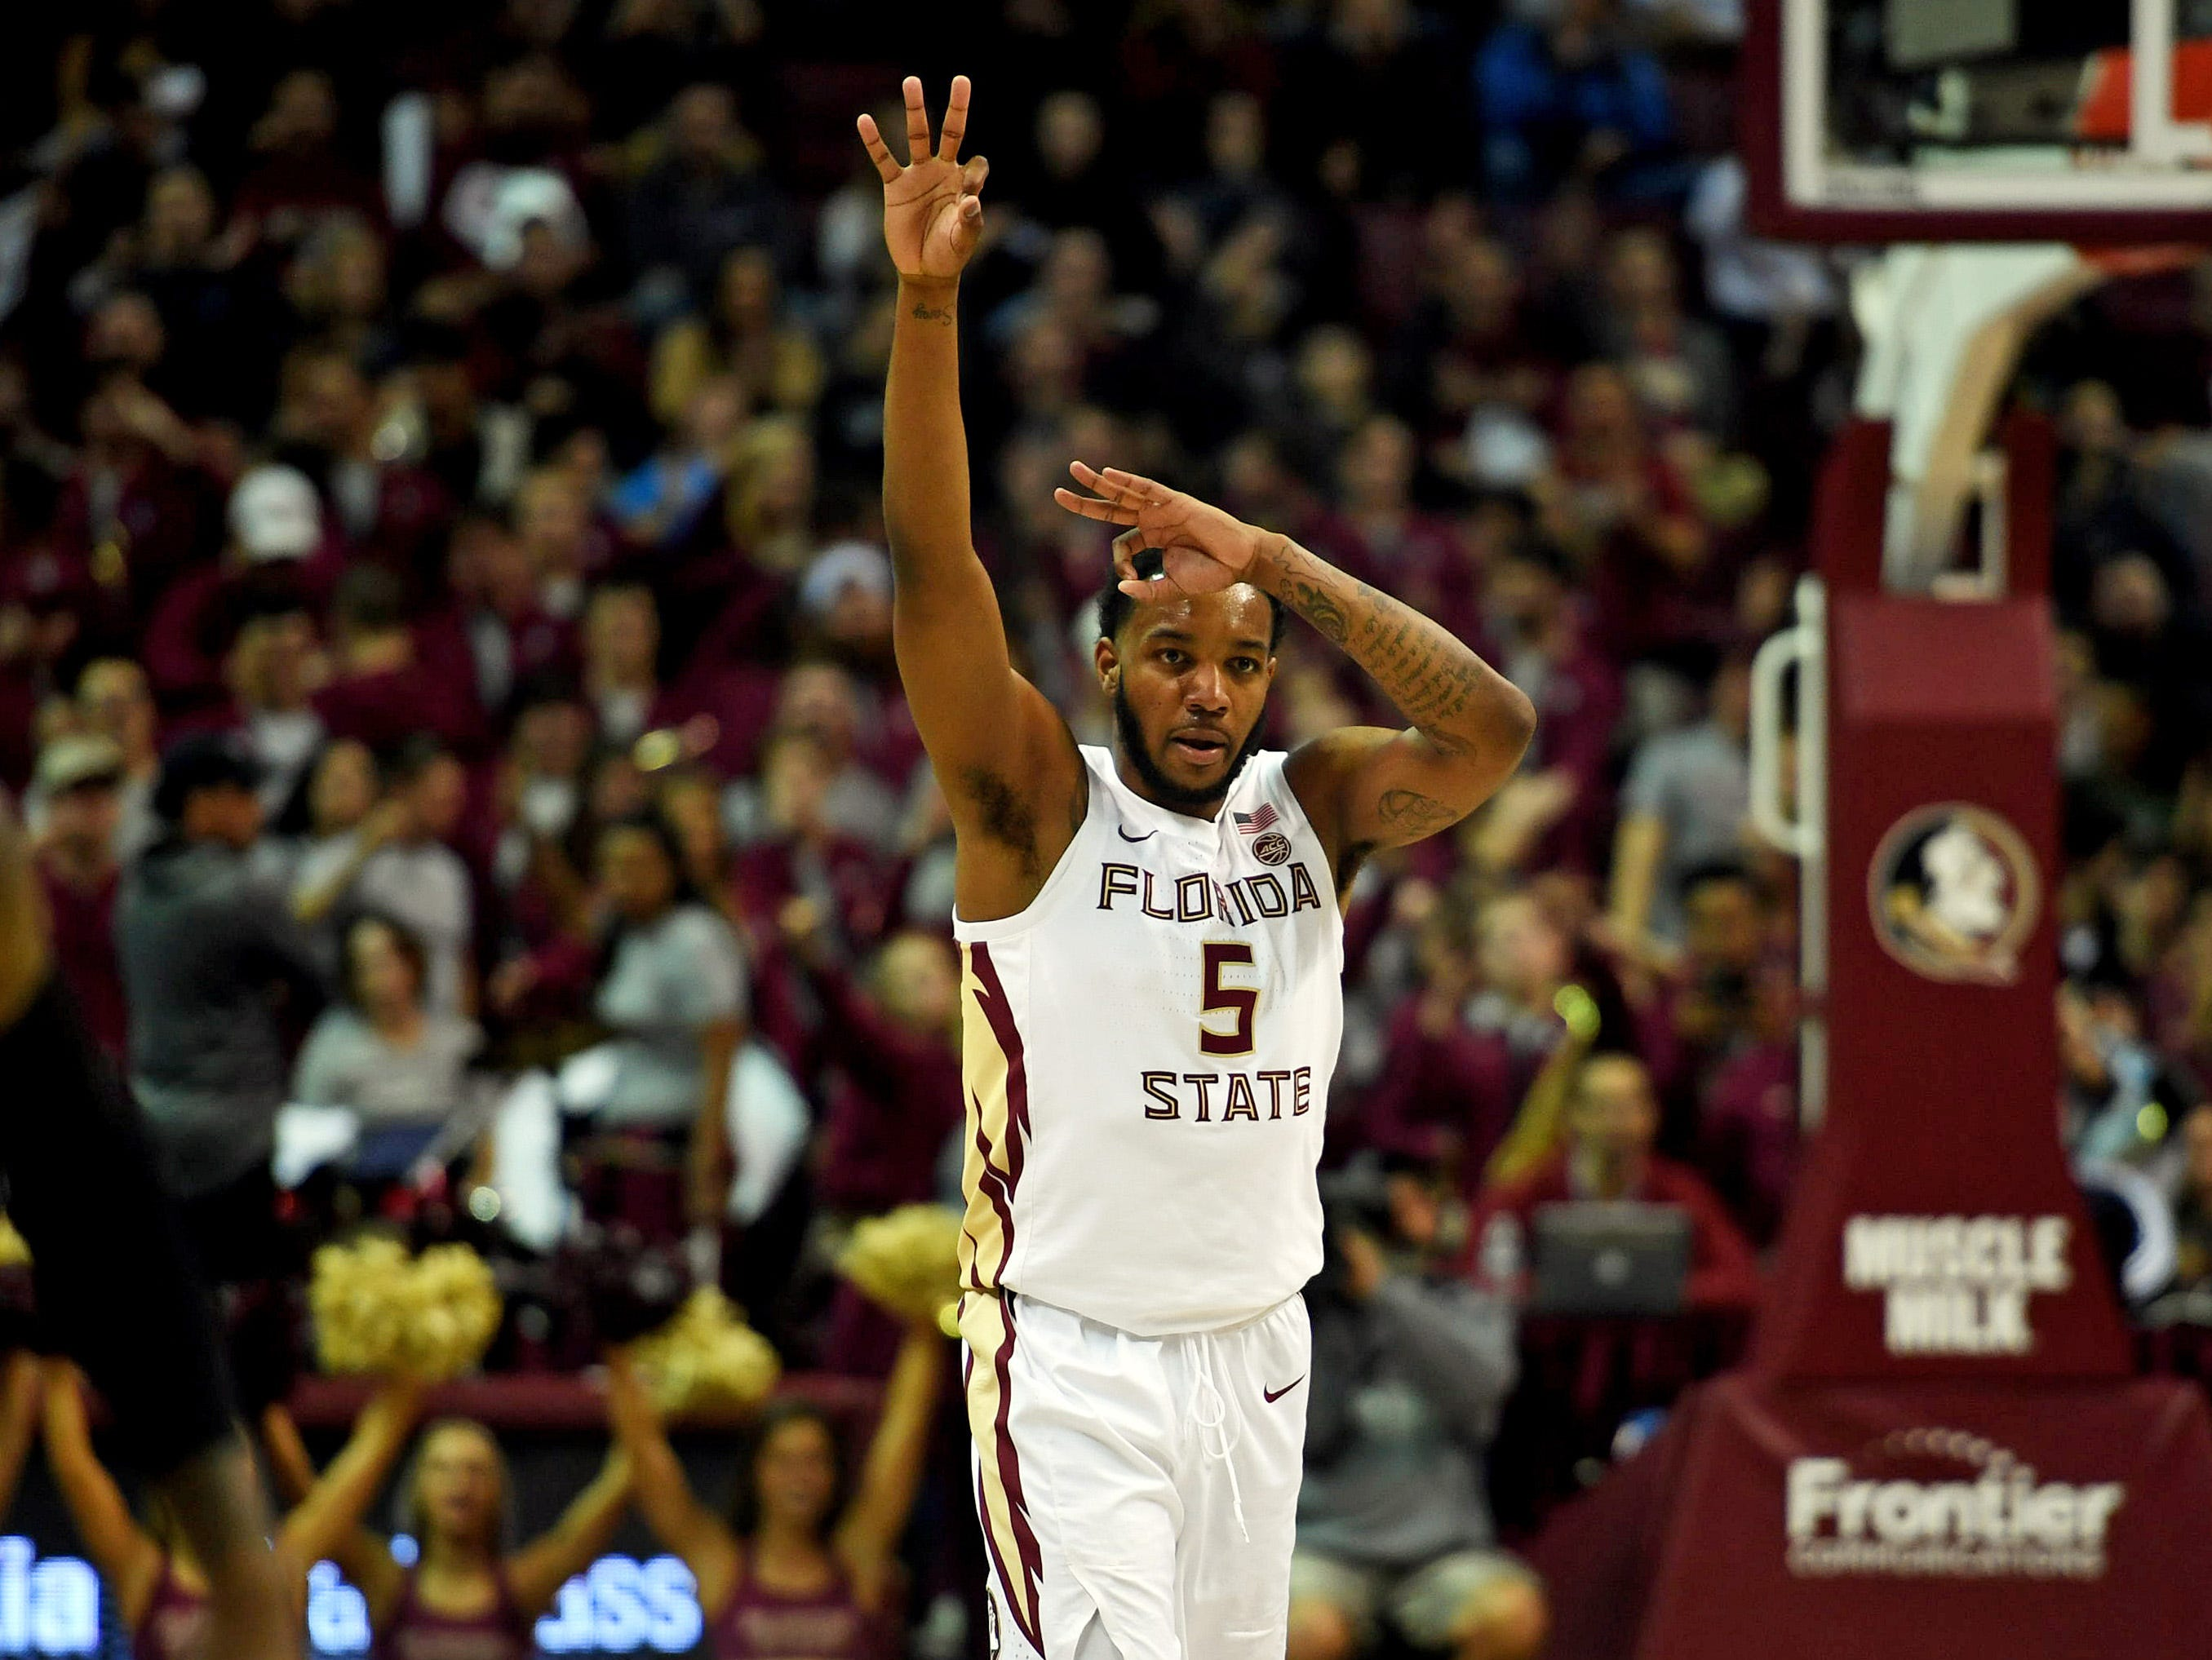 Jan 9, 2019; Tallahassee, FL, USA; Florida State Seminoles guard PJ Savoy (5) celebrates after a three point shot during the second half against the Miami Hurricanes  at Donald L. Tucker Center. Mandatory Credit: Melina Myers-USA TODAY Sports